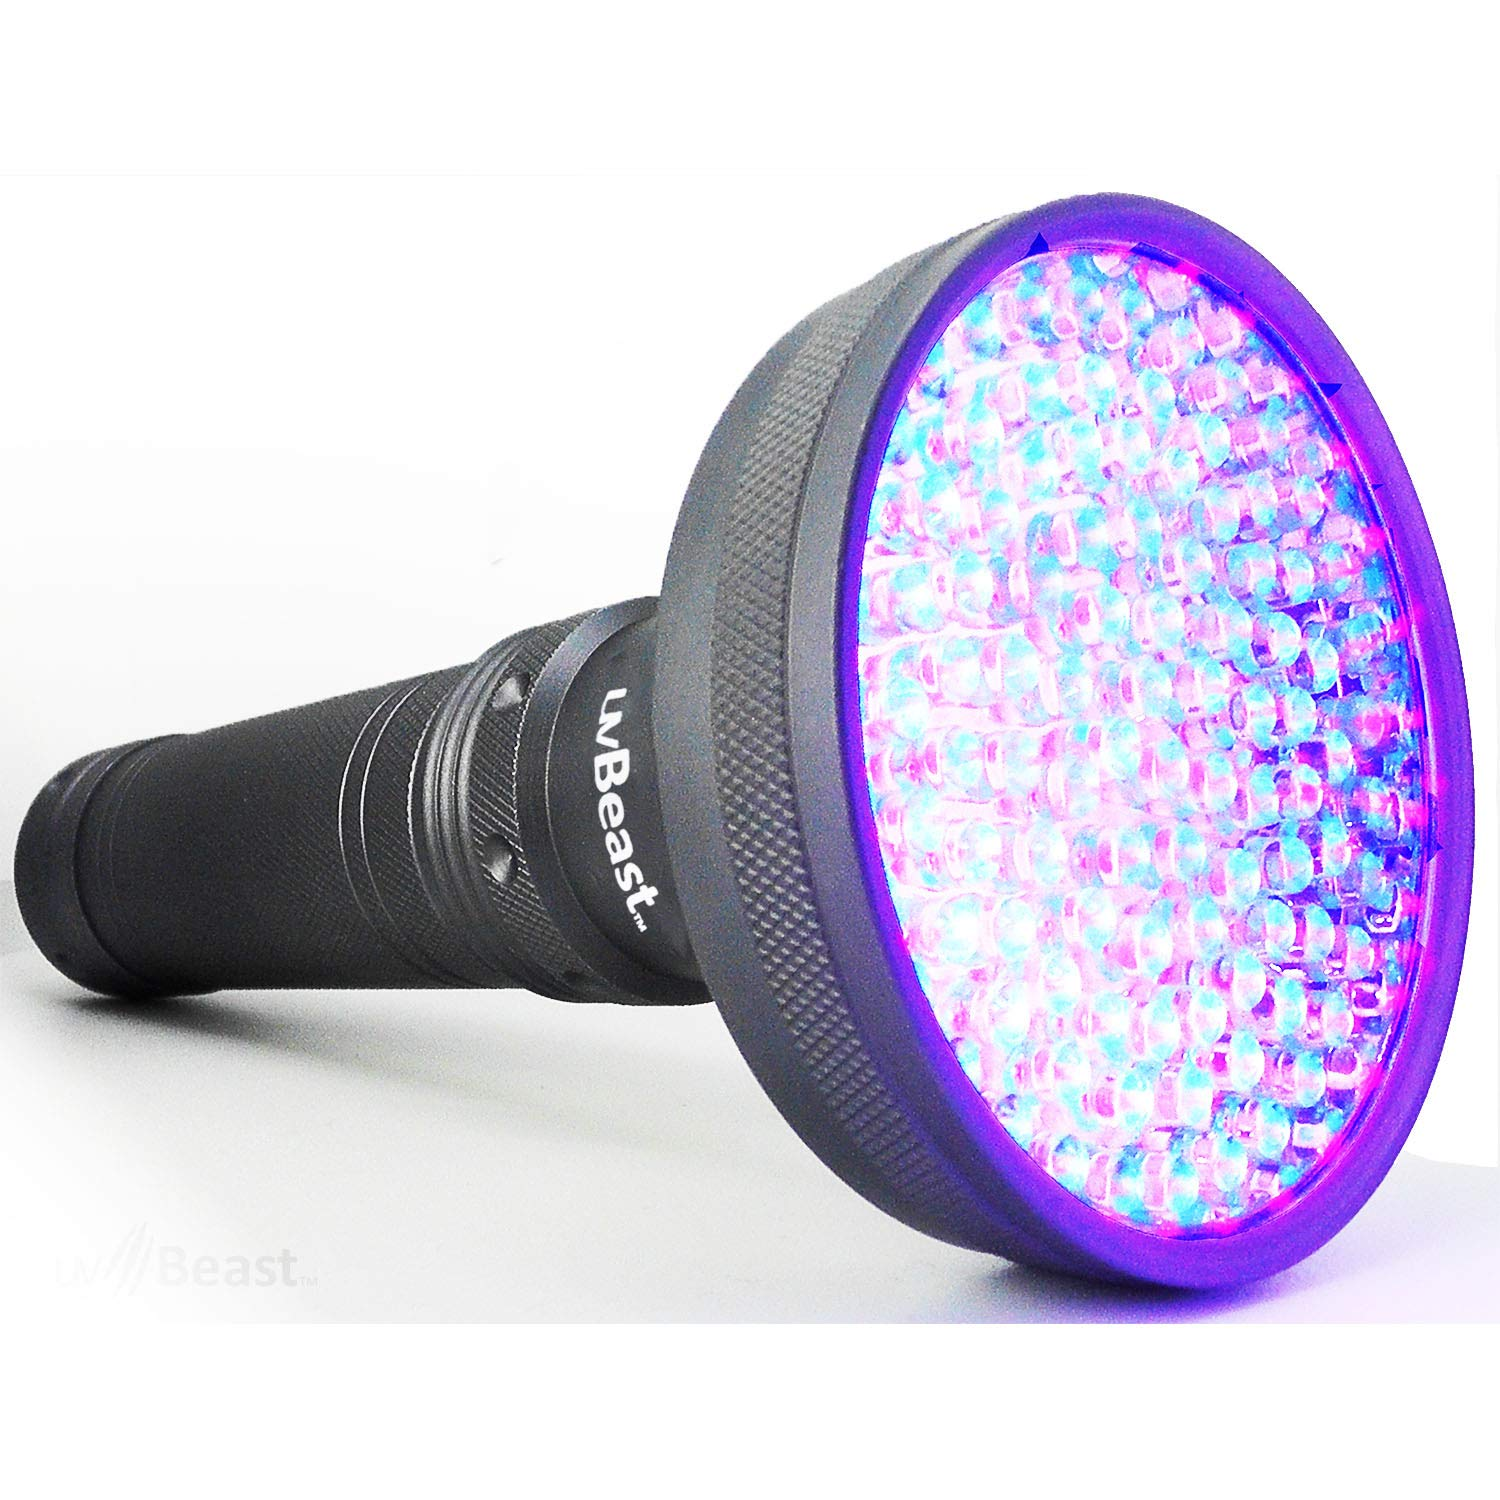 uvBeast NEW VERSION 2 - Black Light UV Flashlight with HIGH DEFINITION 100 LED with Flood Effect 385-395nm UV Best for Commercial/Domestic Use Works Even in Ambient Light - Registered Design by uvBeast (Image #1)